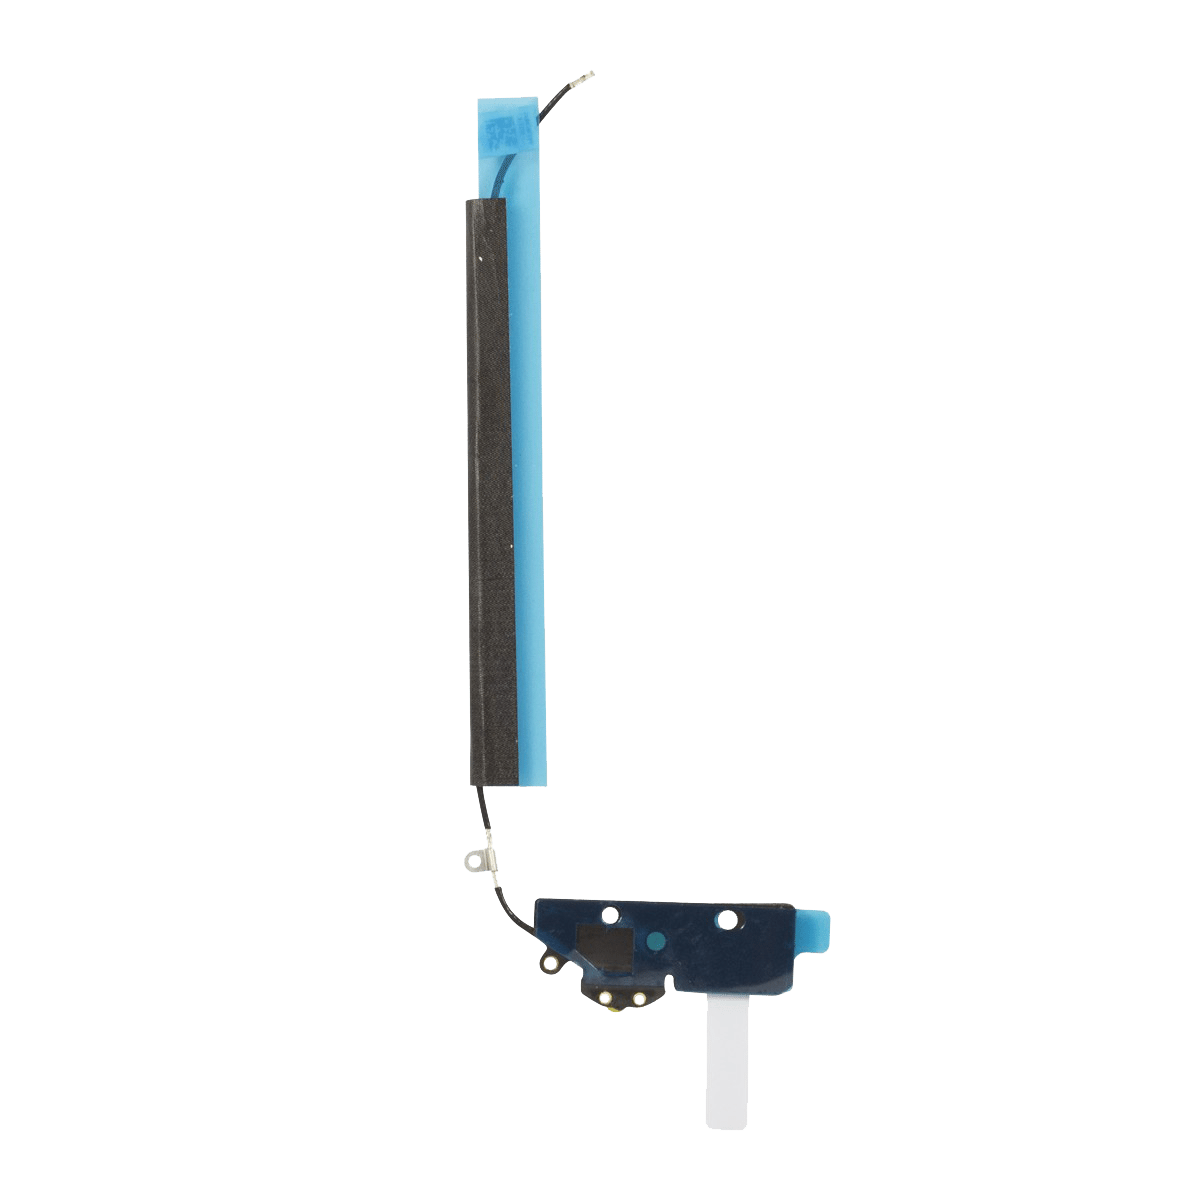 iPad 3 WiFi Antenna Flex Cable Replacement